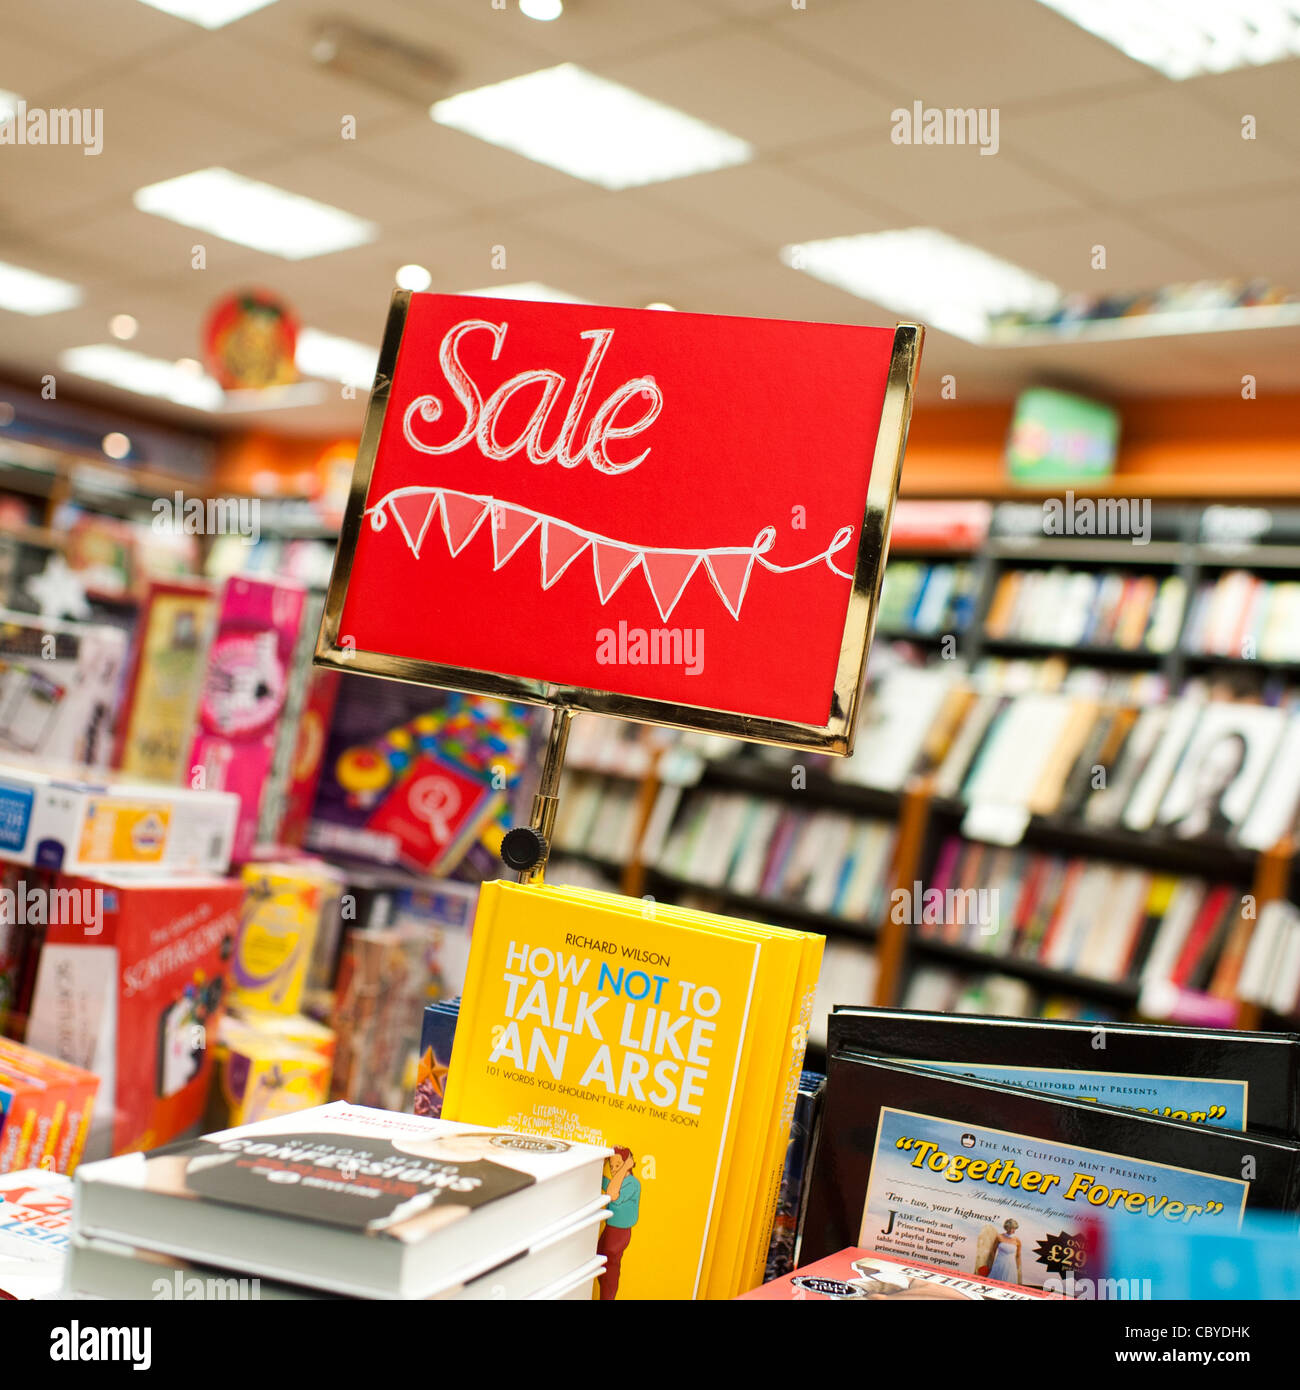 Waterstones' current owner Russian oligarch Alexander Mamut put the business up for sale in October, handled by N M Rothschild. At stores and annual revenues in the range of £ million, Waterstones is the second largest bookseller in the UK.